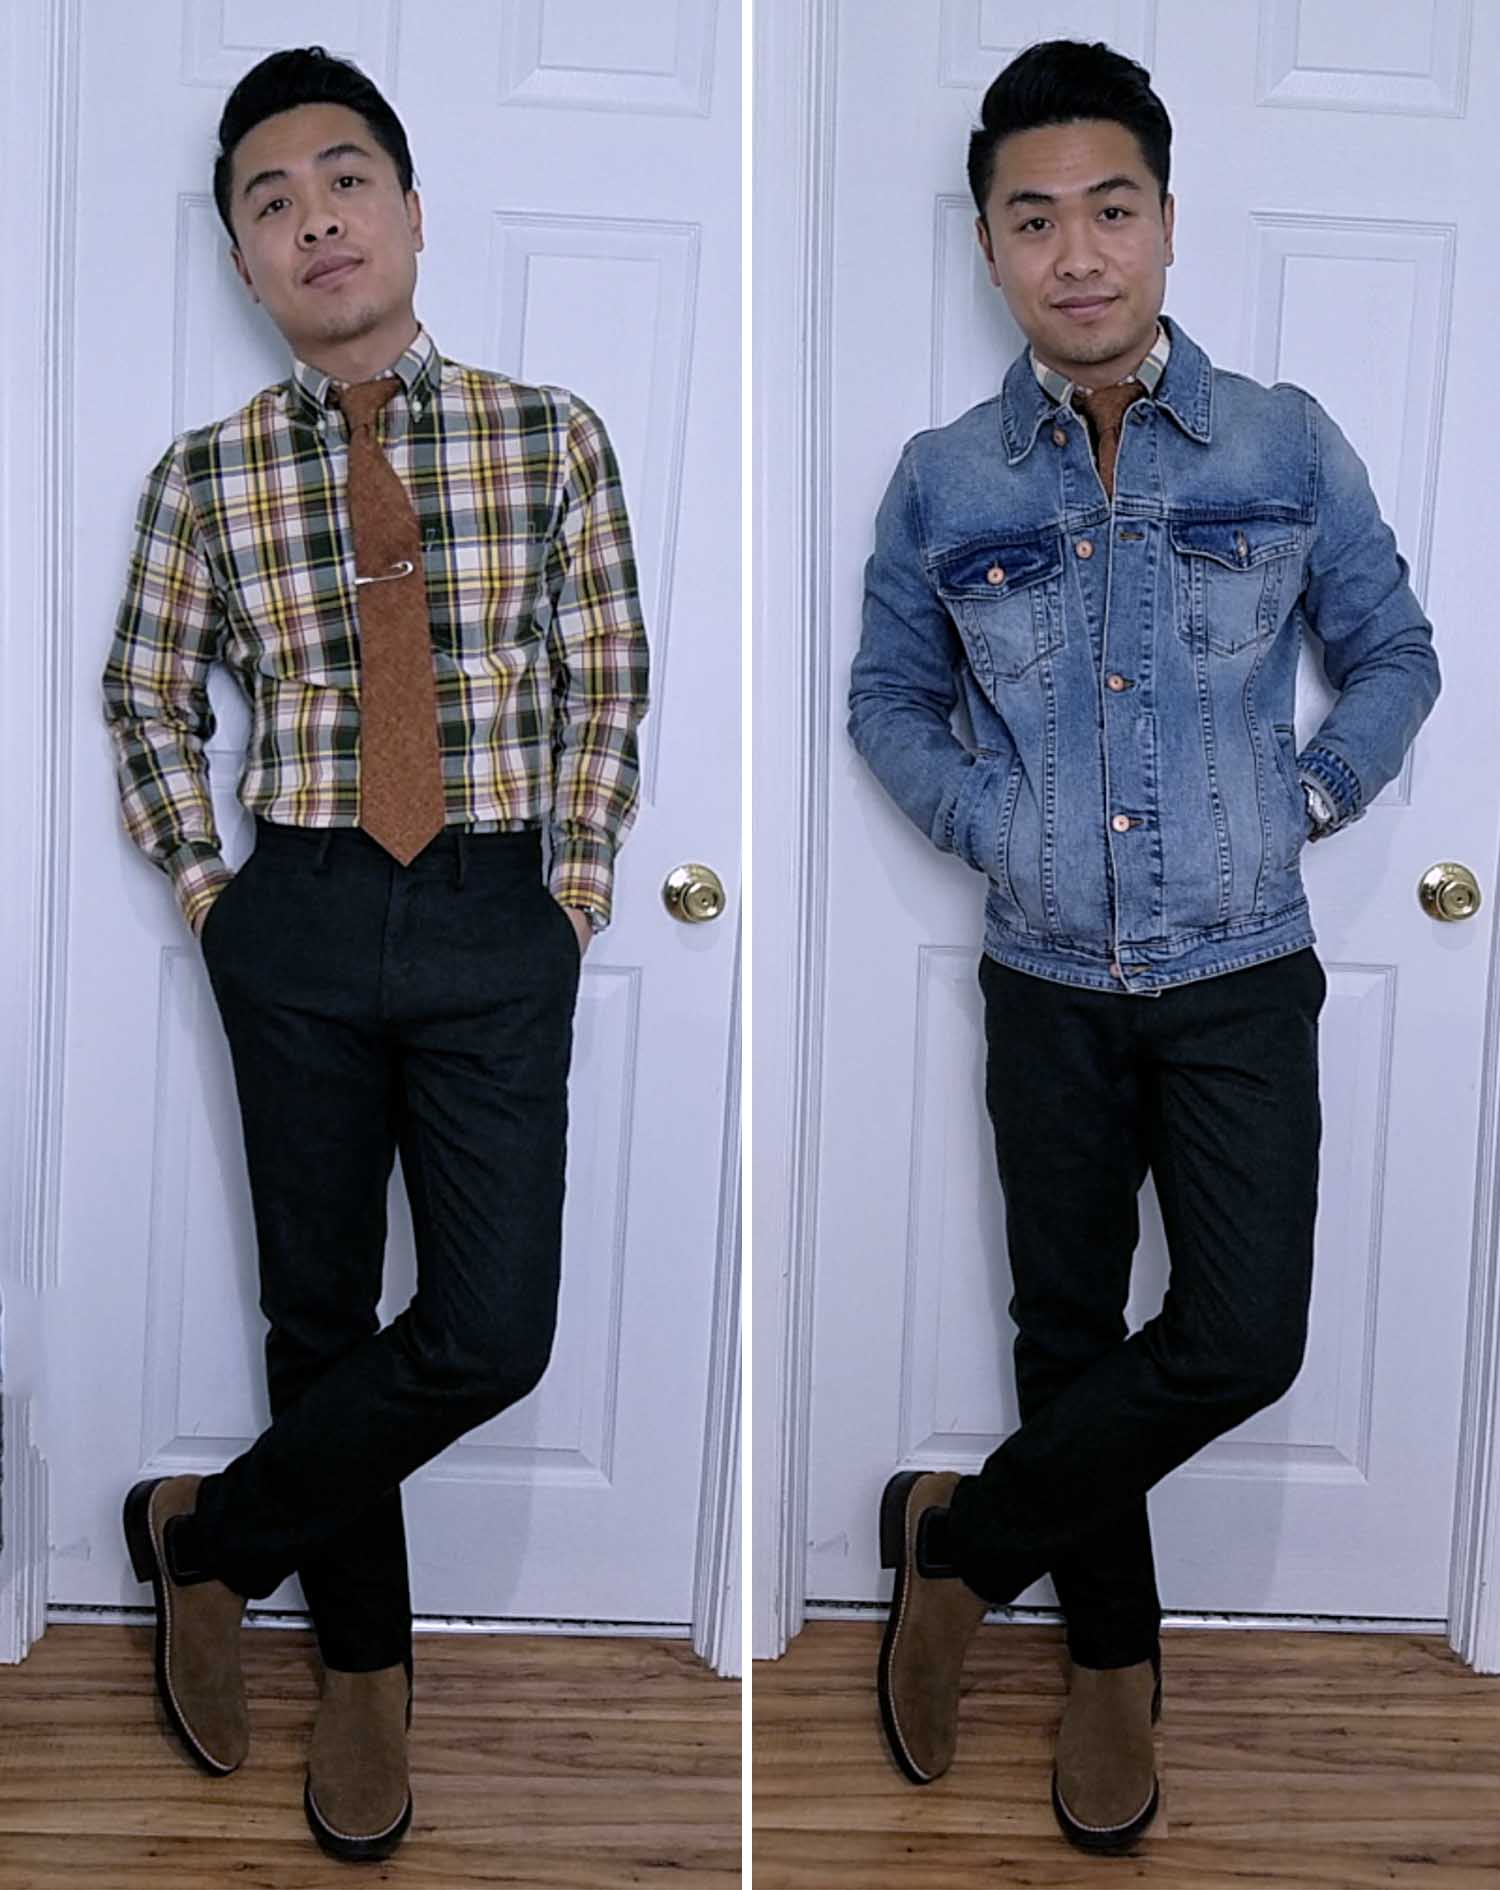 The Dressed Denim | GENTLEMAN WITHIN